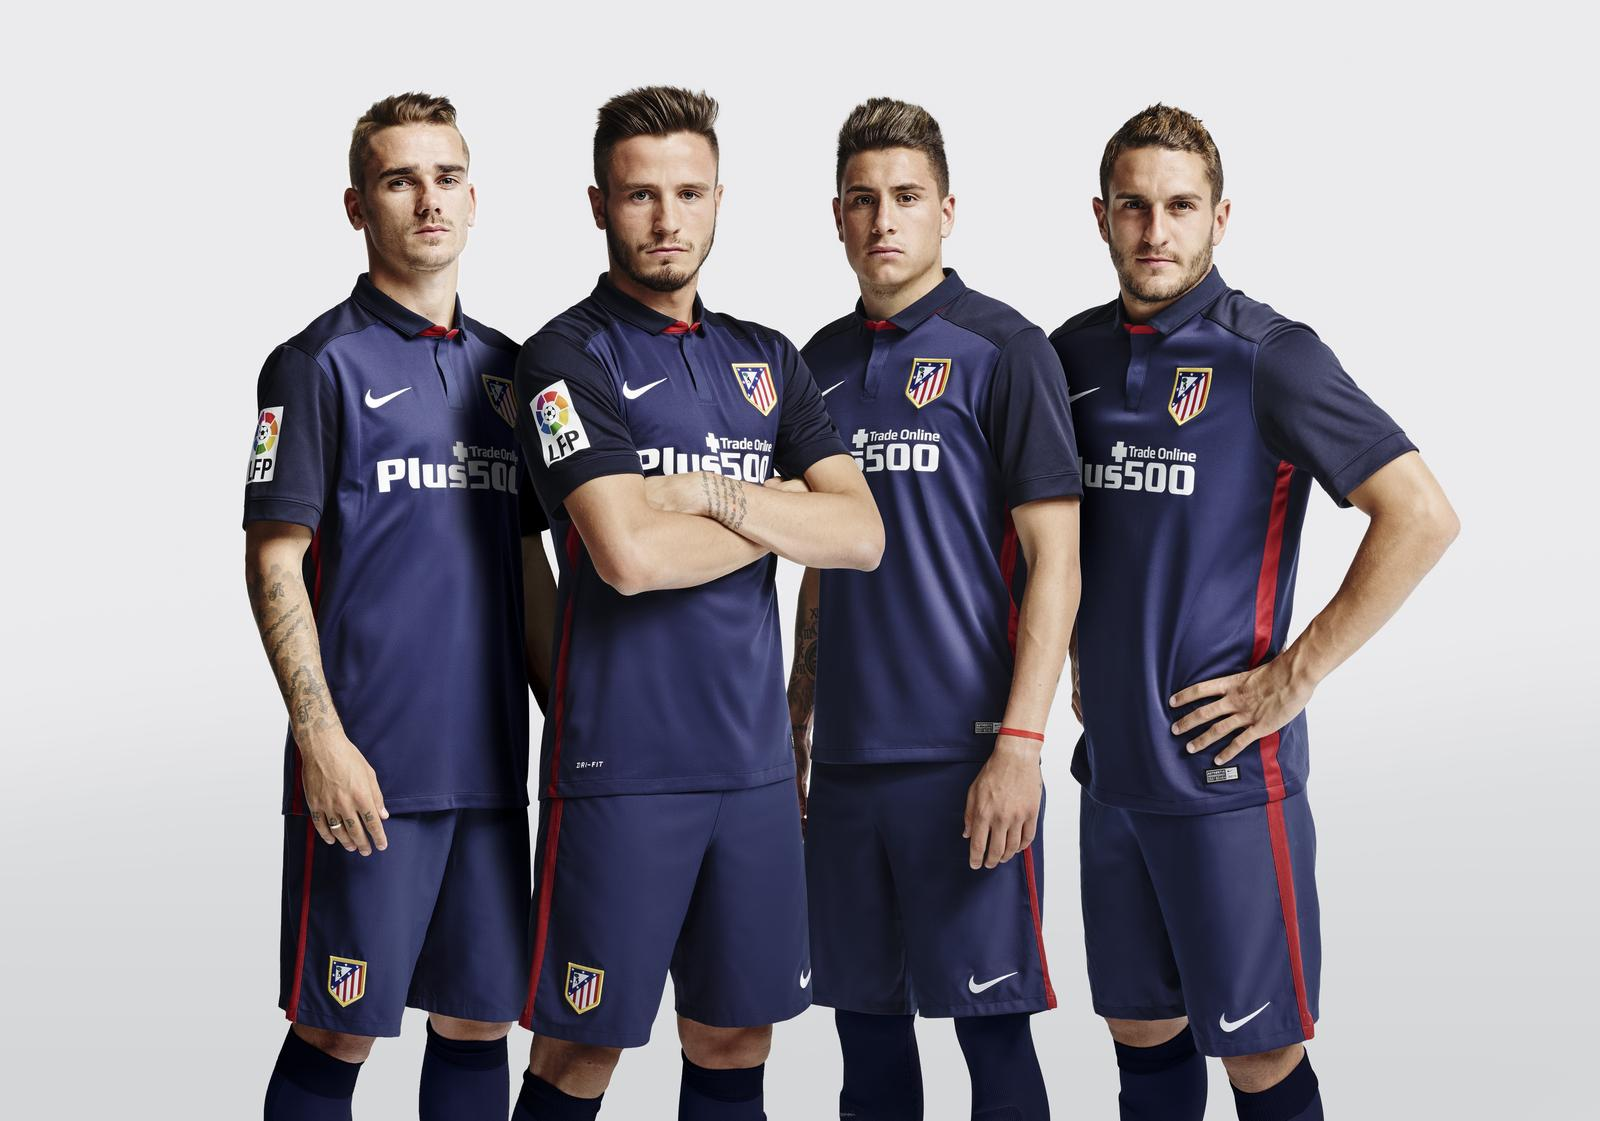 b2a1d2f56 Atlético de Madrid's Dark Blue Away Colors Evoke Club's Landmark ...